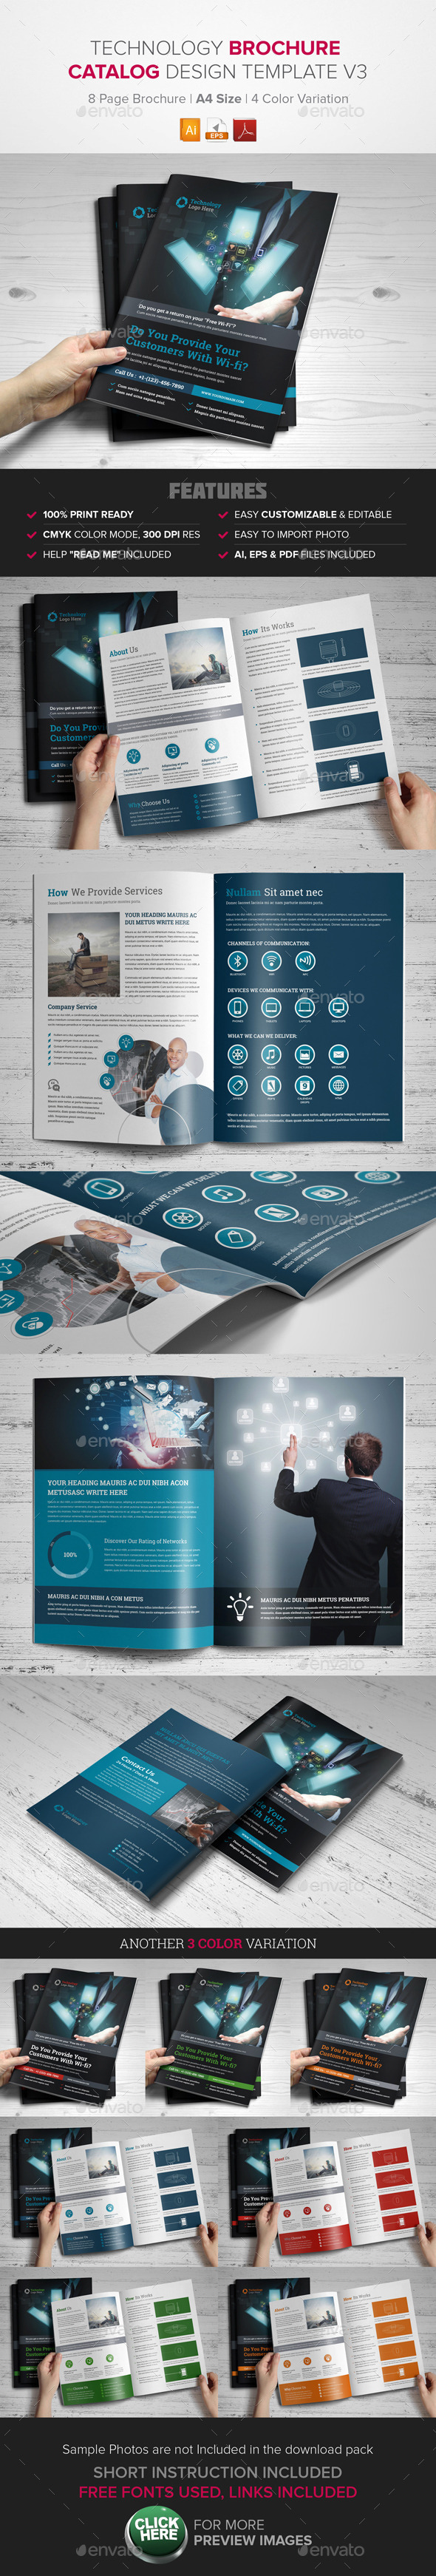 GraphicRiver Technology Brochure Catalog Template v3 9721805